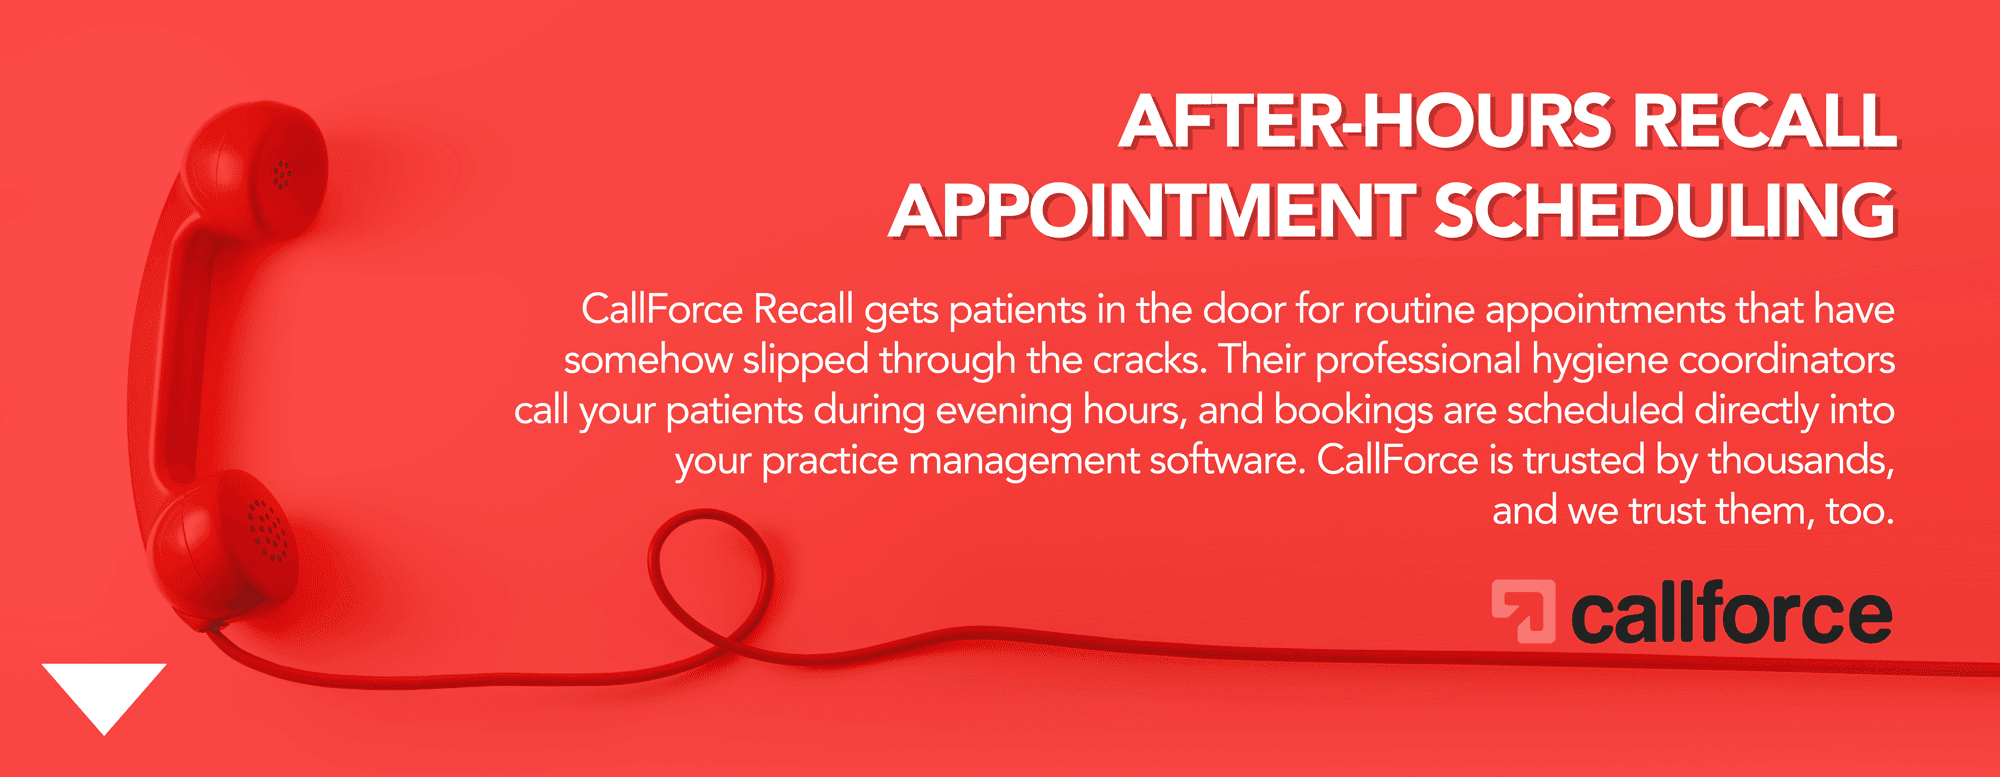 After-Hours Recall